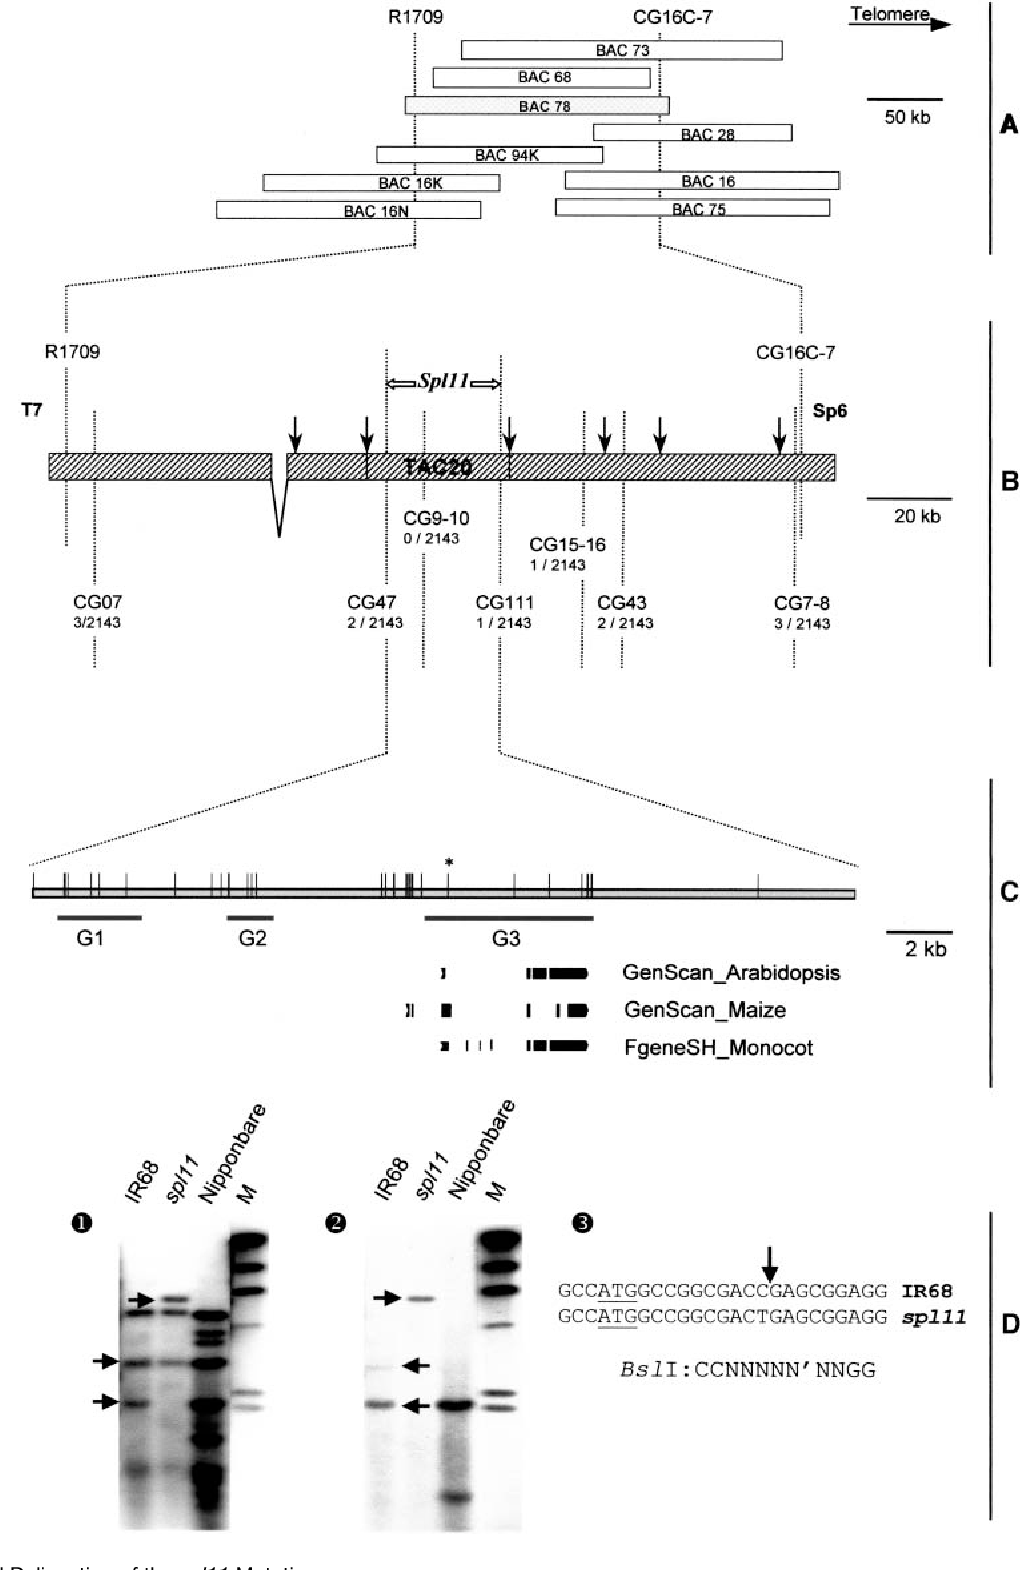 Figure 1. Physical Delineation of the spl11 Mutation.